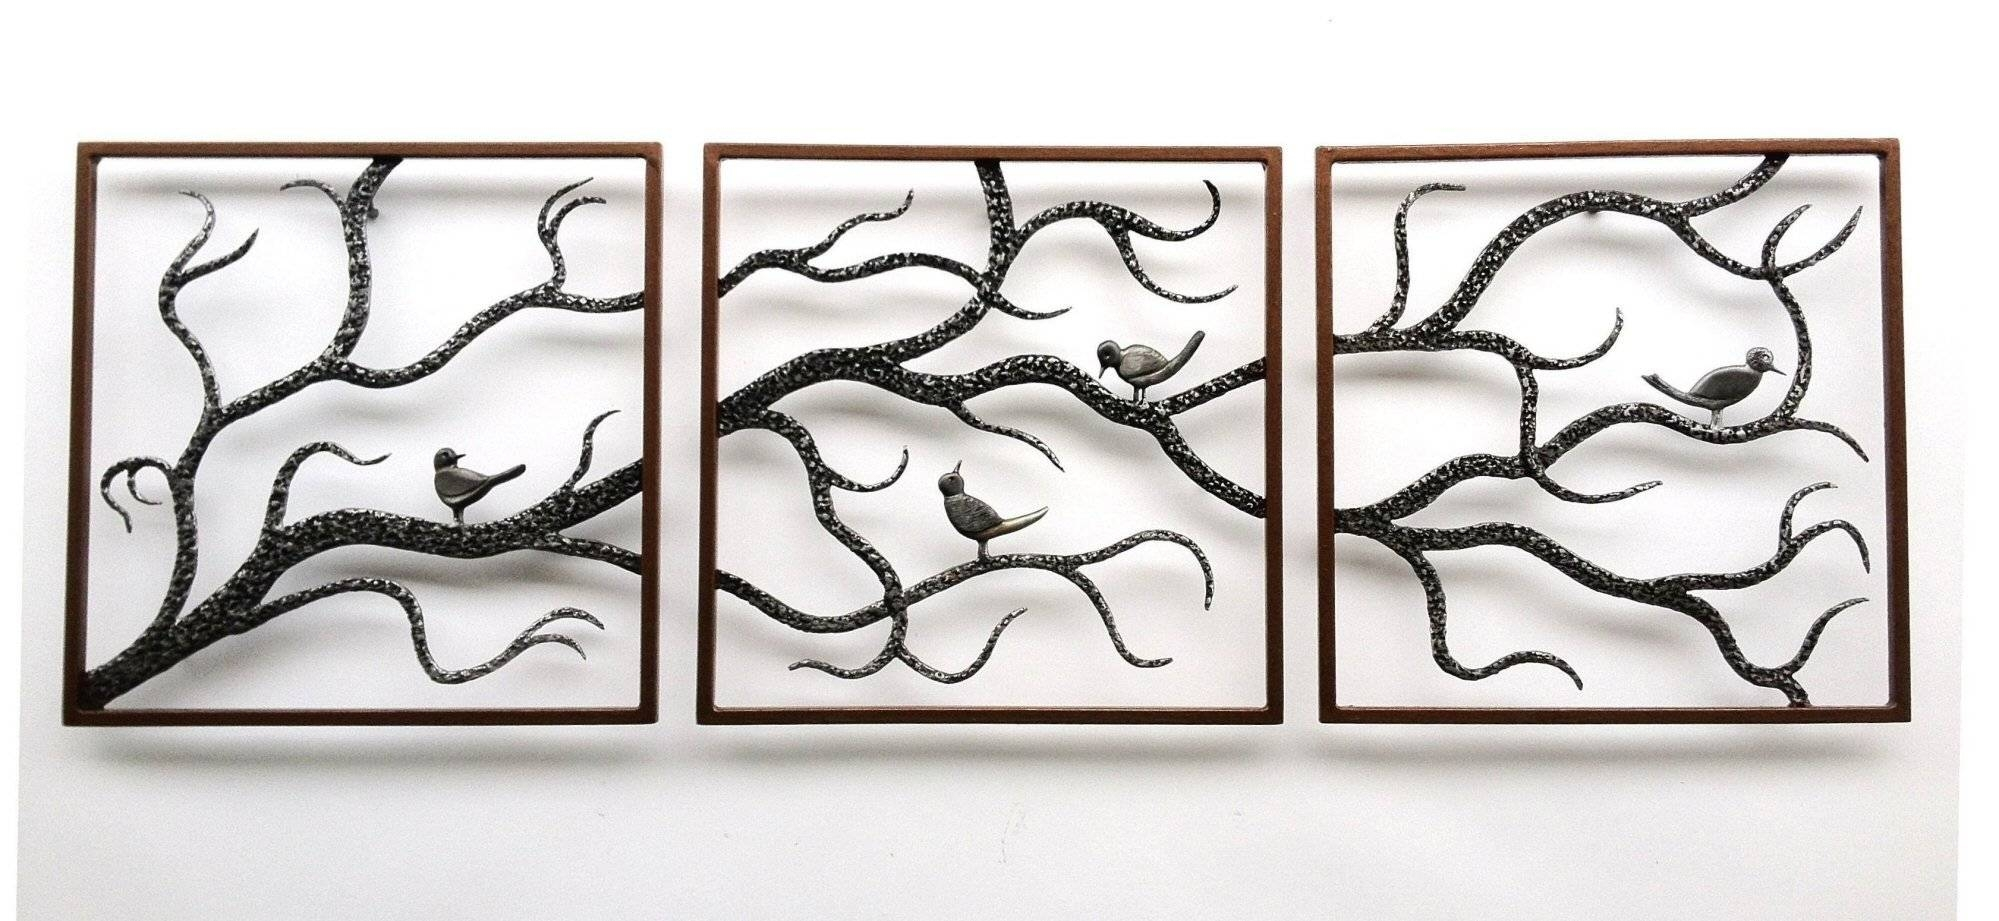 Wall Art Designs: Metal Wall Art Trees Birch Three Framed Cute With Regard To Best And Newest Unique Metal Wall Art Decors (View 14 of 20)